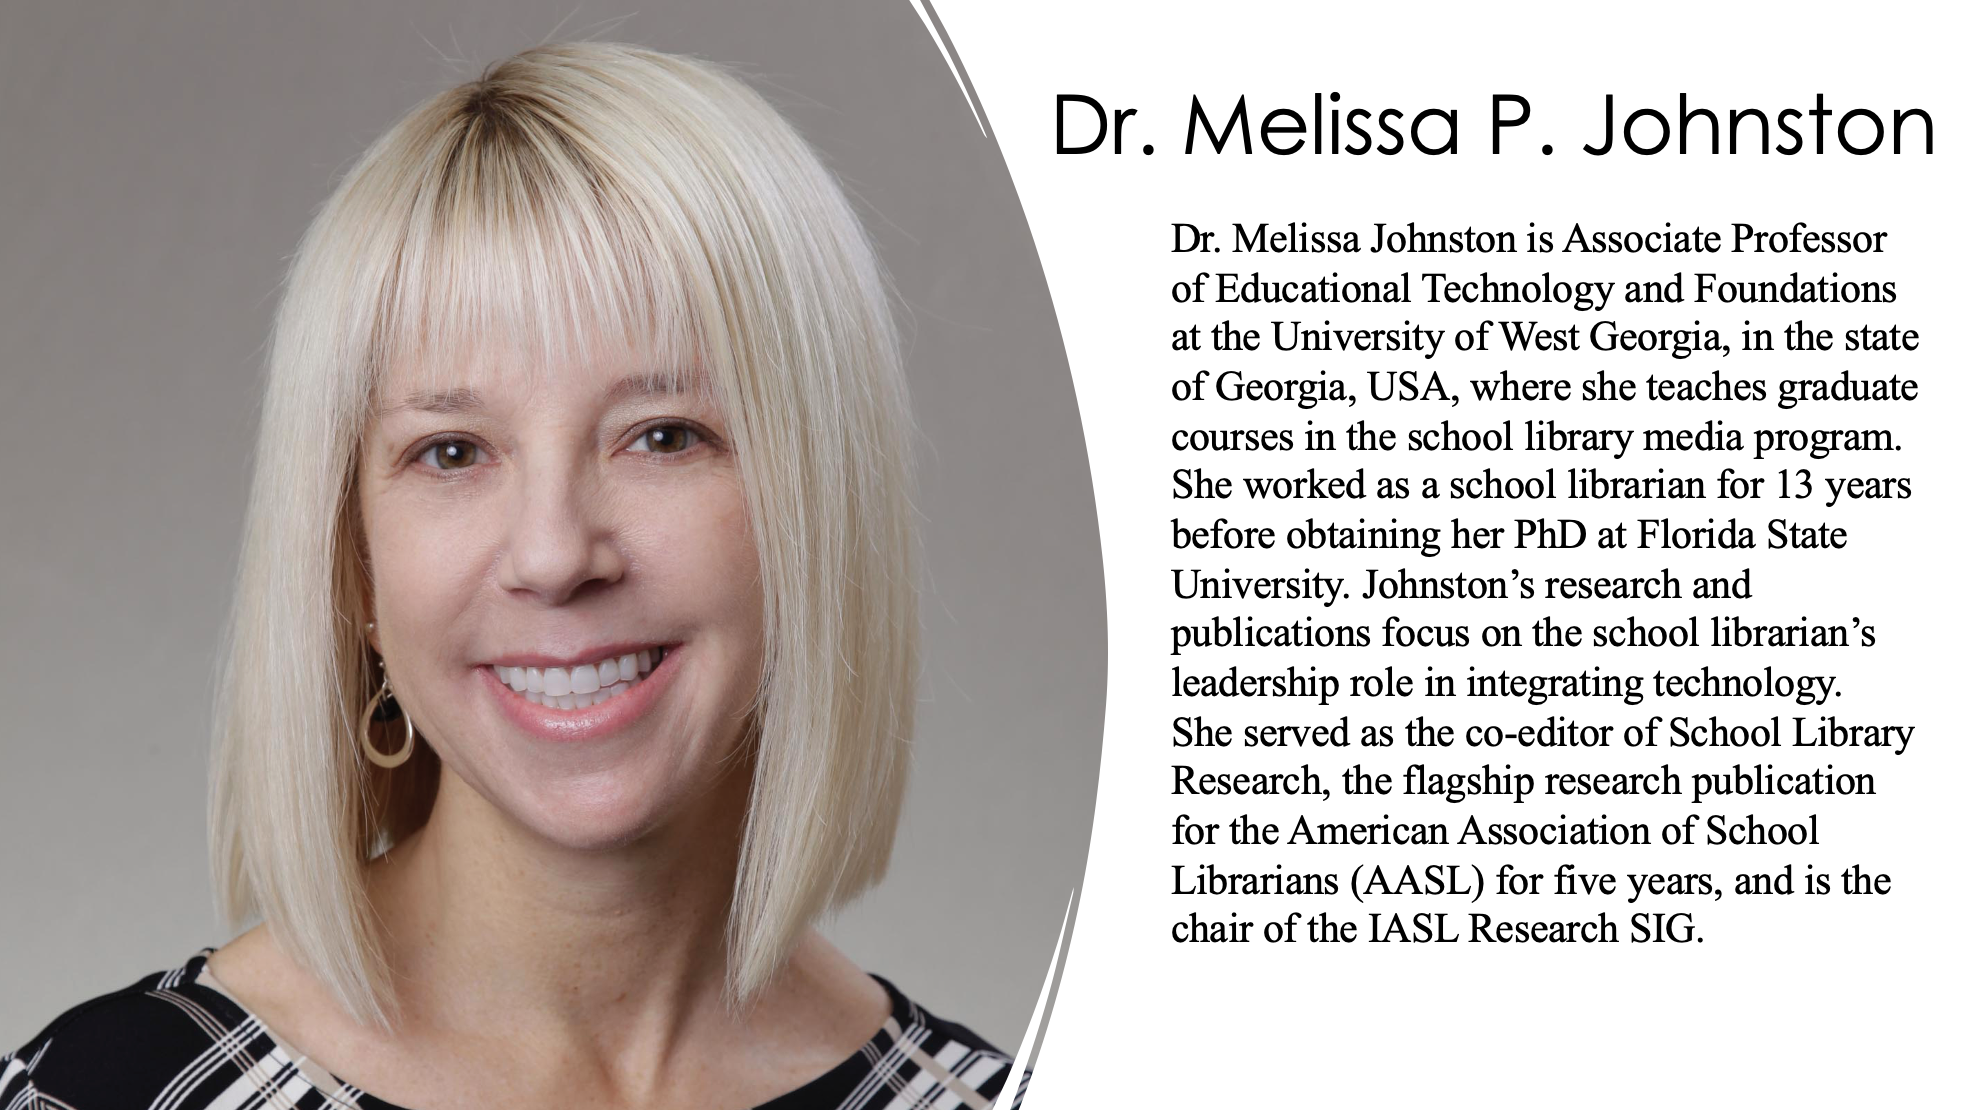 Dr. Melissa Johnston is Associate Professor of Educational Technology and Foundations at the University of West Georgia, in the state of Georgia, USA, where she teaches graduate courses in the school library media program. She worked as a school librarian for 13 years before obtaining her PhD at Florida State University. Johnston's research and publications focus on the school librarian's leadership role in integrating technology.  She served as the co-editor of School Library Research, the flagship research publication for the American Association of School Librarians (AASL) for five years, and is the chair of the IASL Research SIG.